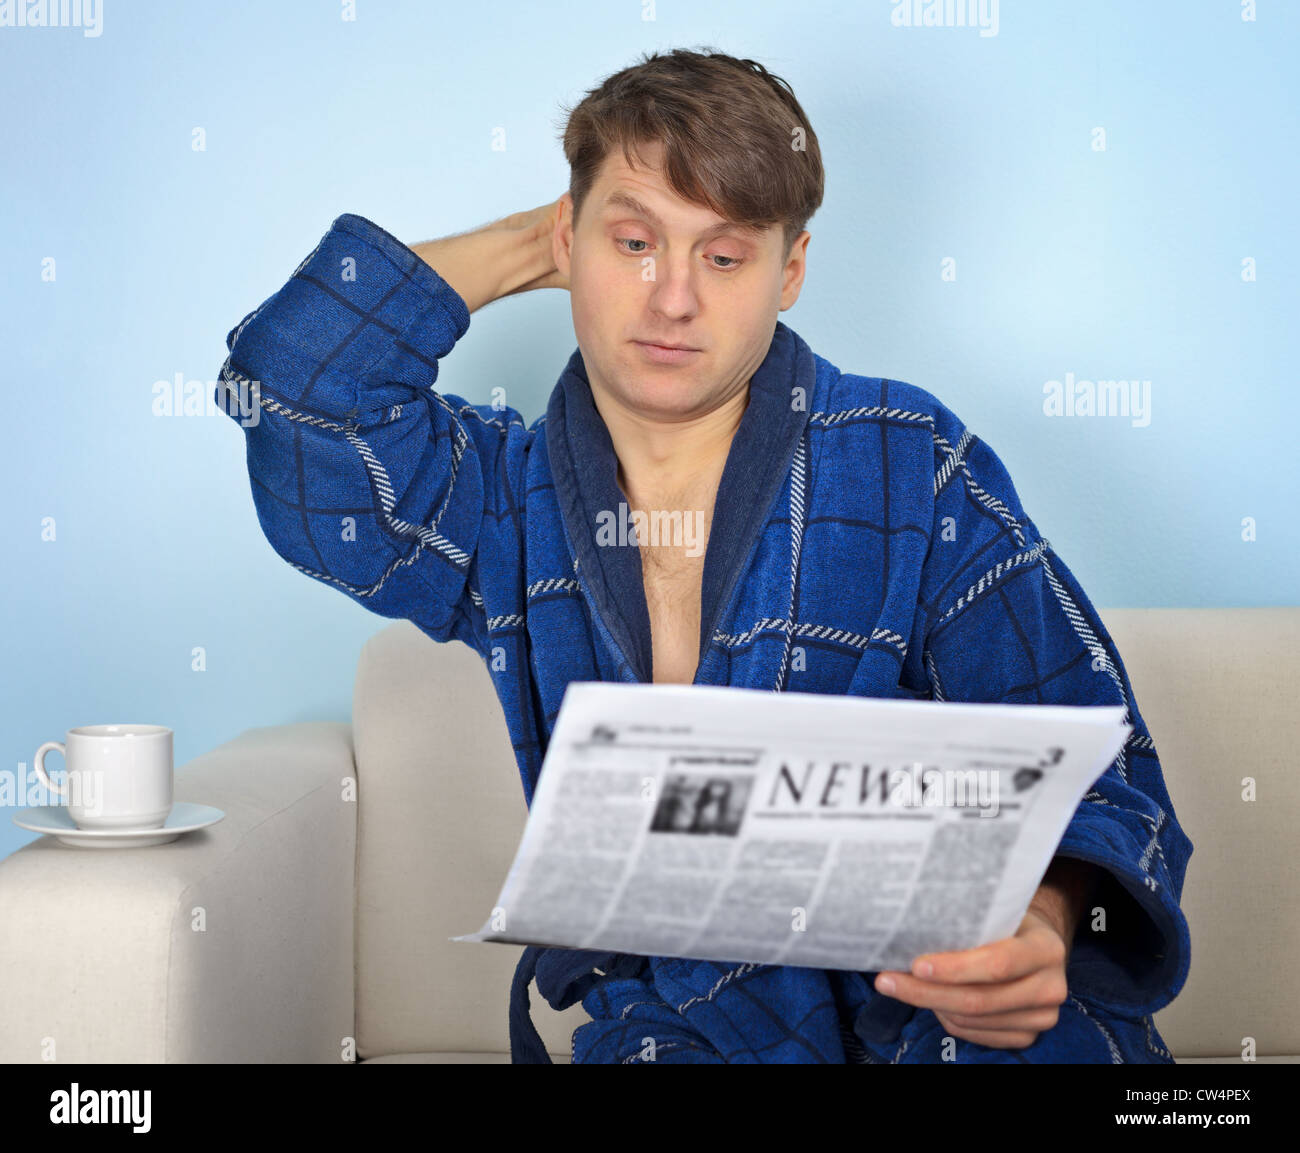 Person reads a newspaper with pensiveness on blue background - Stock Image